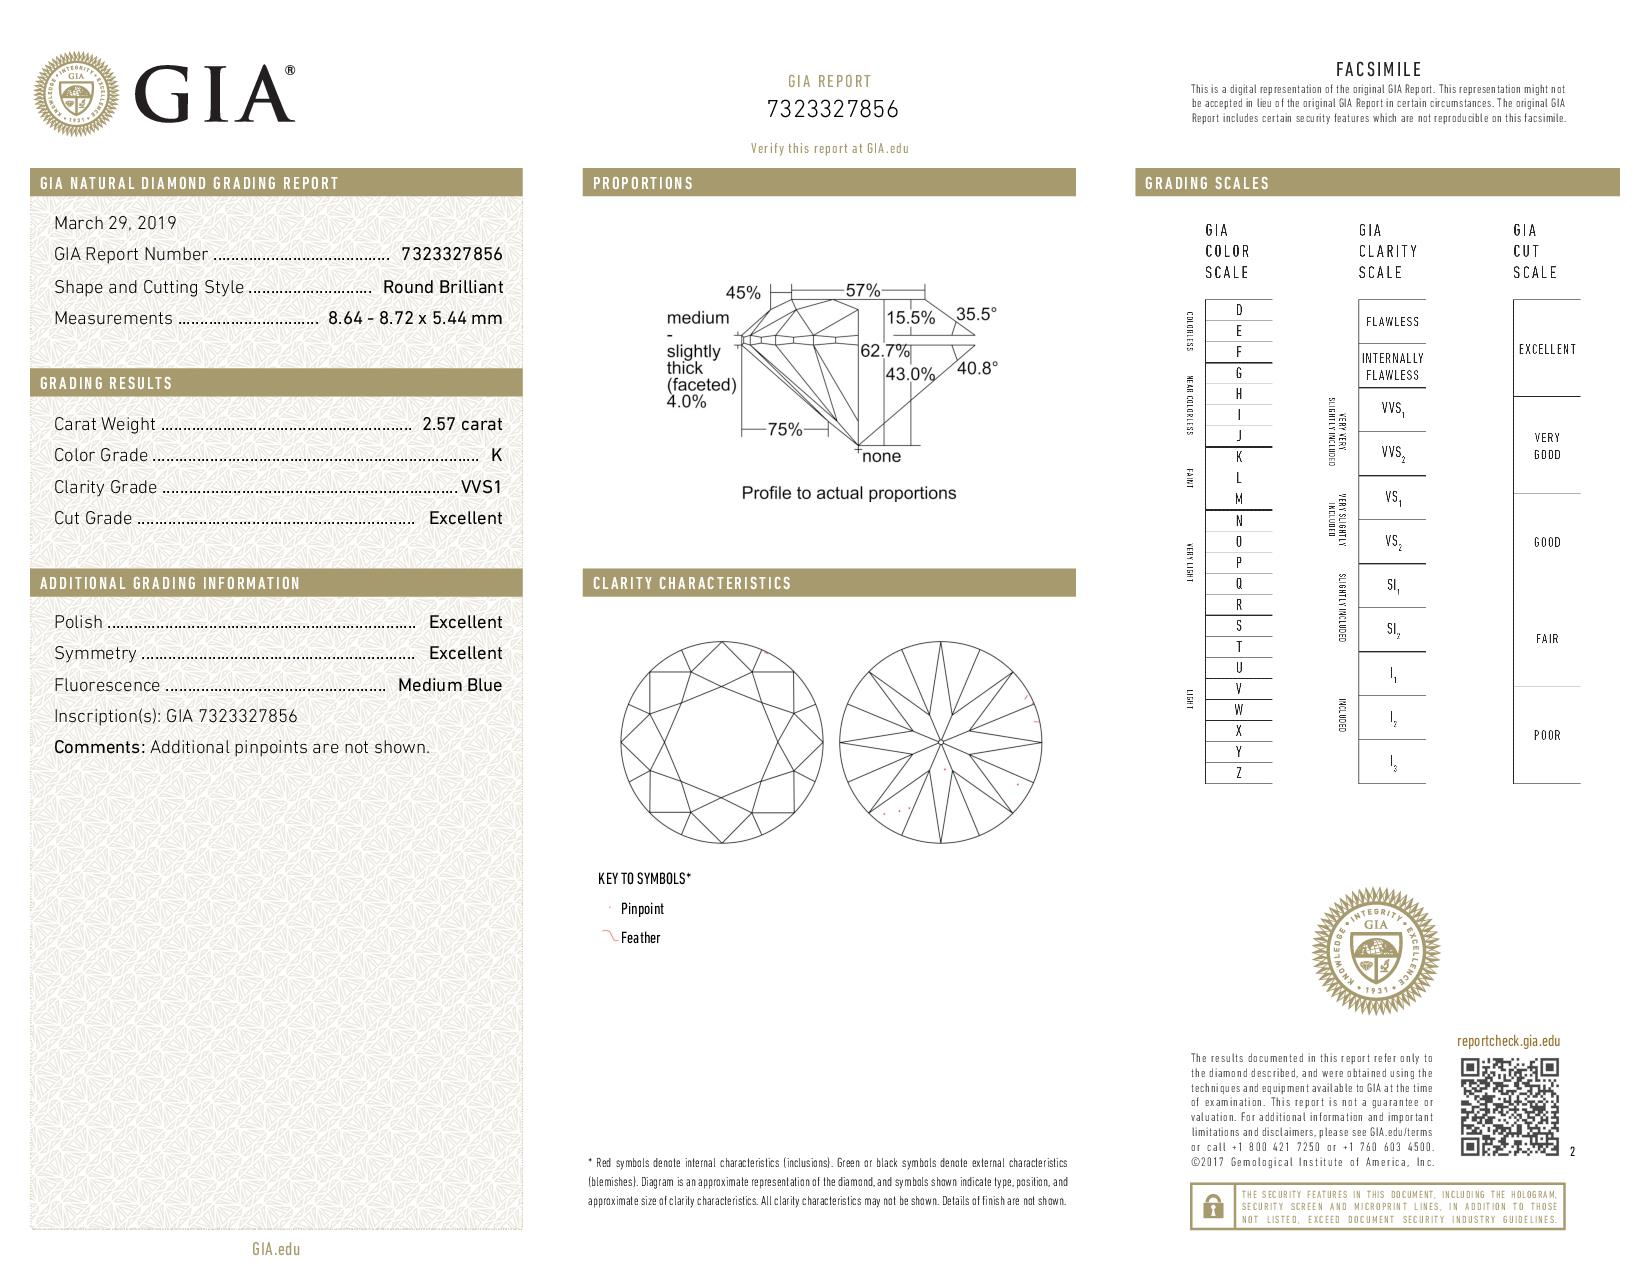 This is a 2.57 carat round shape, K color, VVS1 clarity natural diamond accompanied by a GIA grading report.